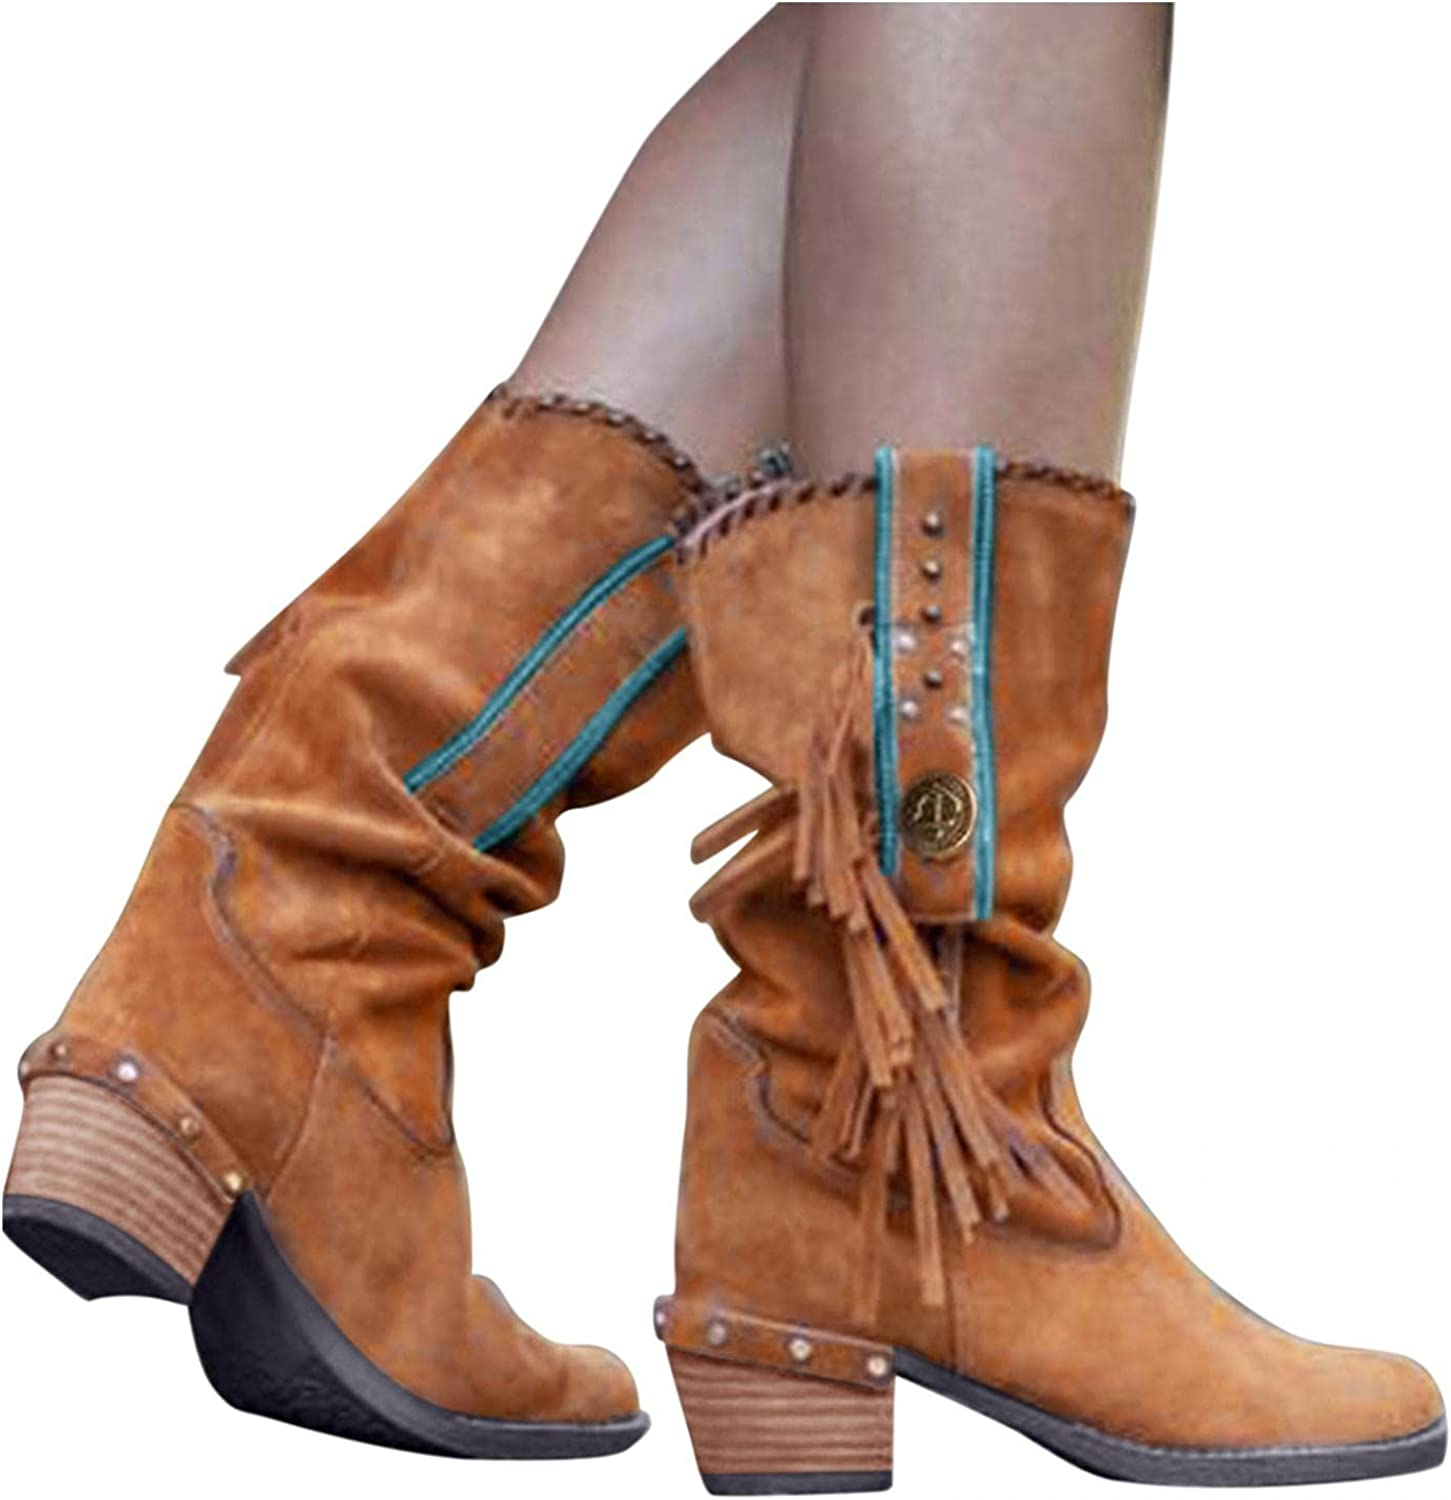 Zieglen Women's Winter Boots, Women's Boots with Retro Fringe Wide Calf Mid Booties Western Boots Snow Boots Motorcycle Boots